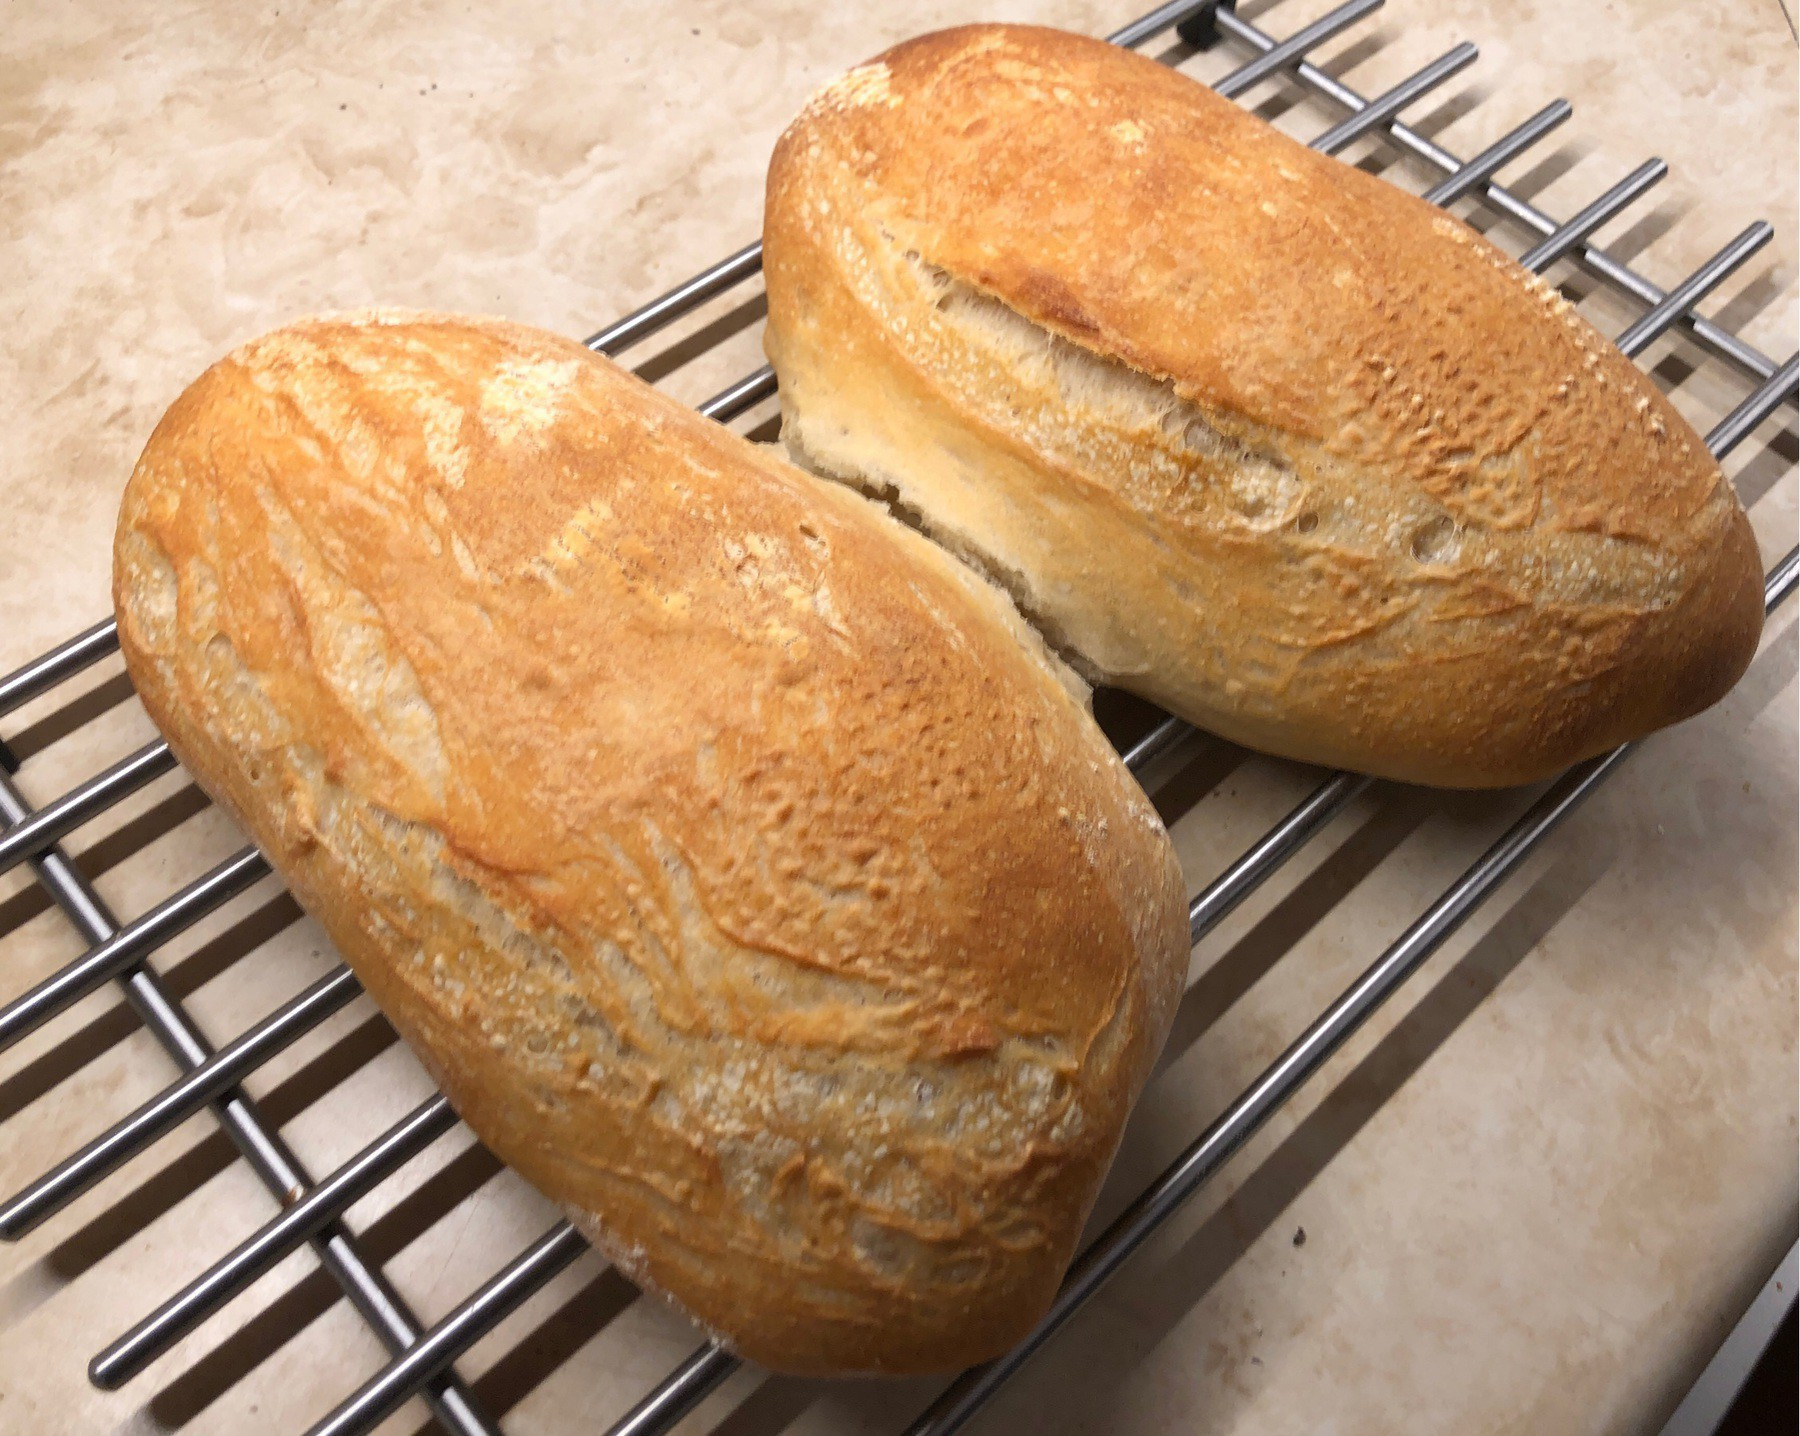 Loaves of sourdough bread cooling.